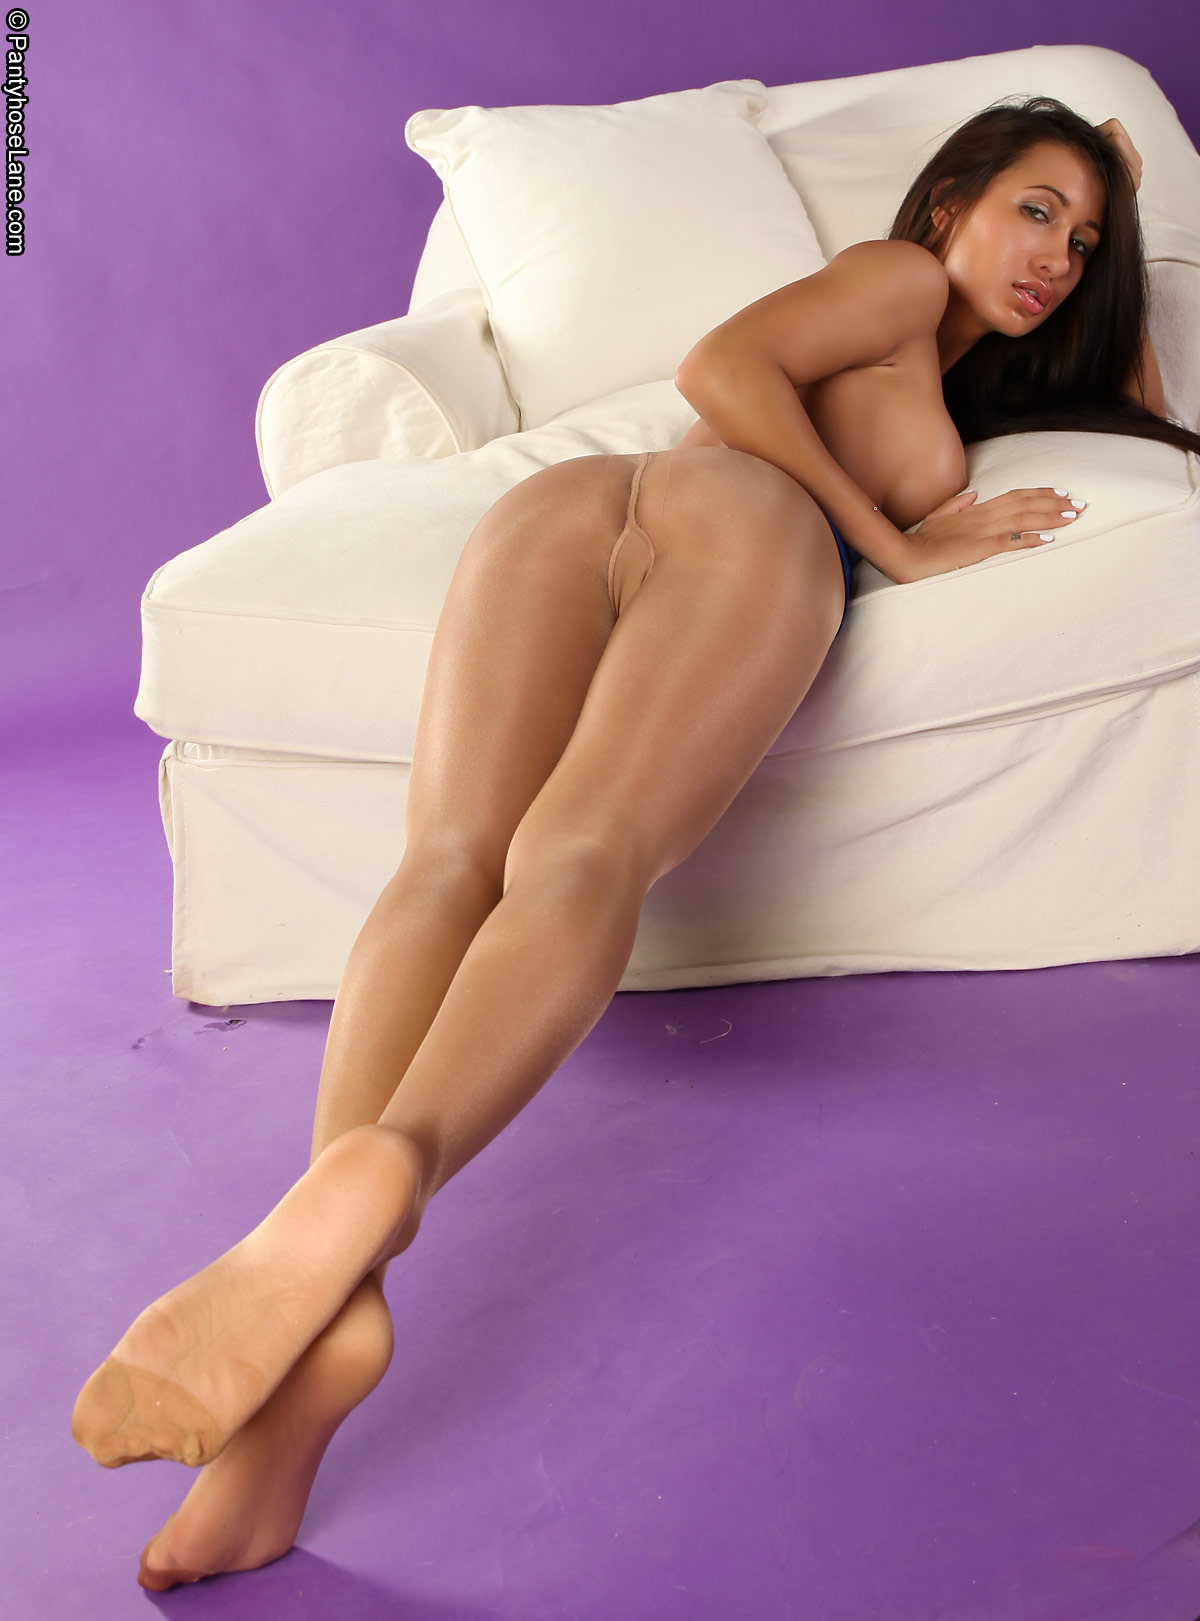 Amia miley in pantyhose